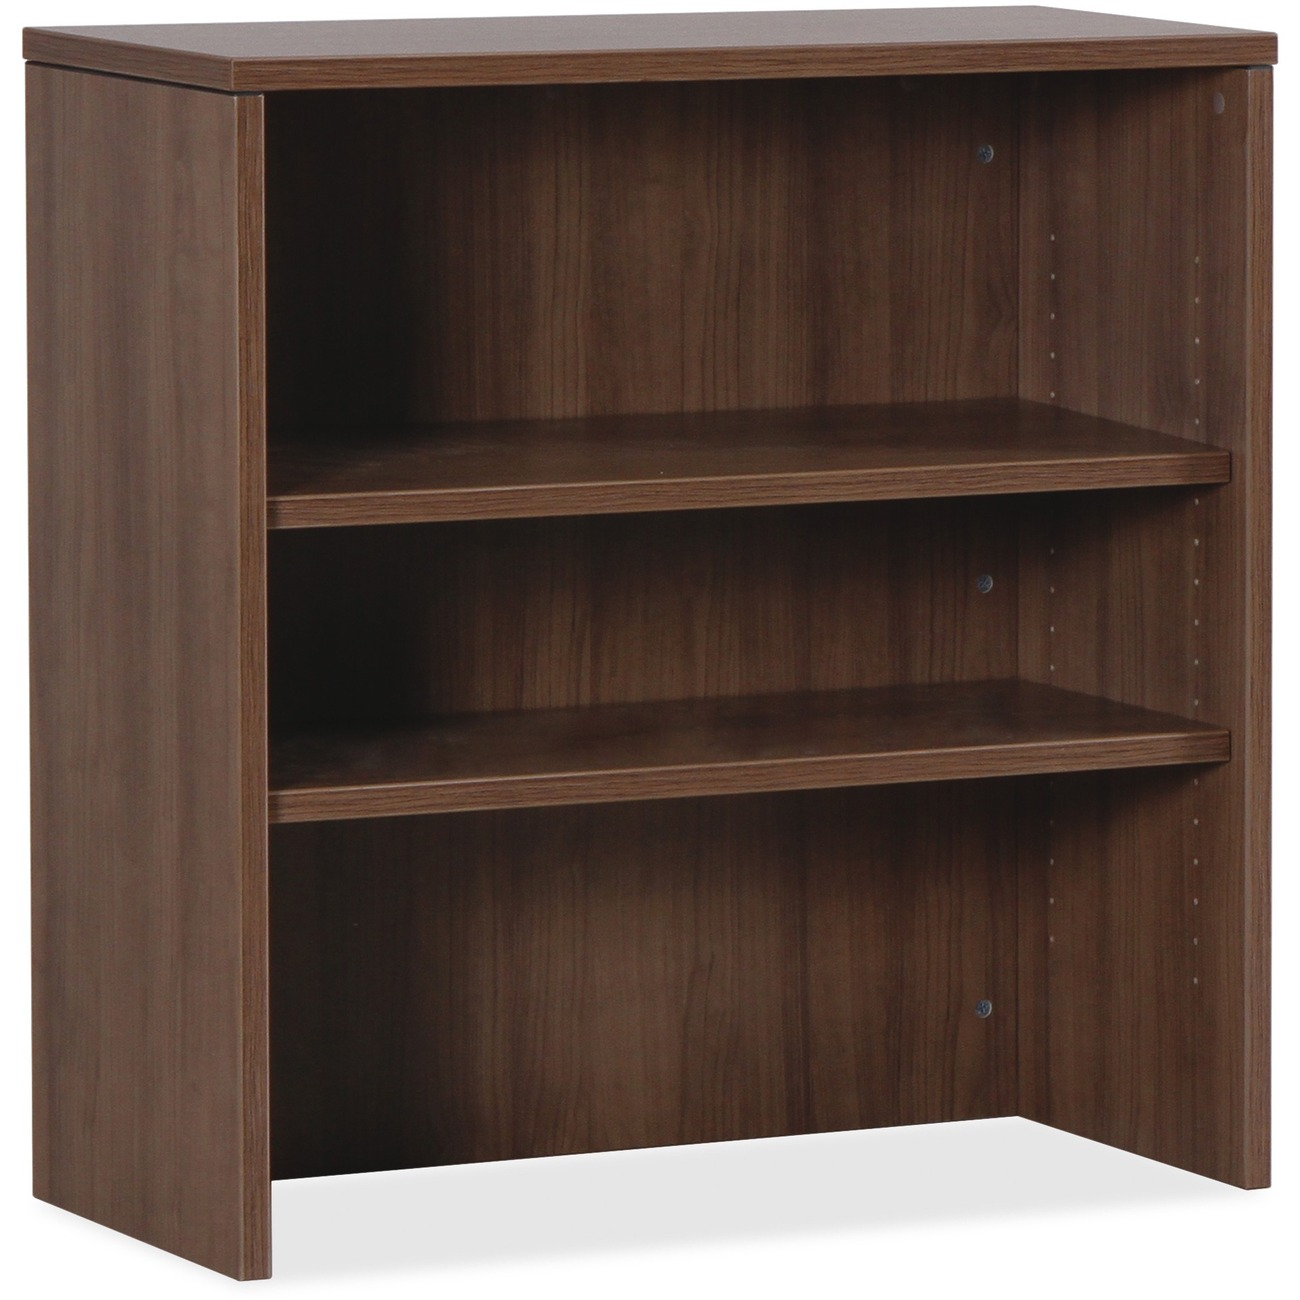 High Quality Laminate Construction And Metal To Cam Lock Connections Use For Books Binders Display Bookshelf Easily Attaches Onto 35 1 2